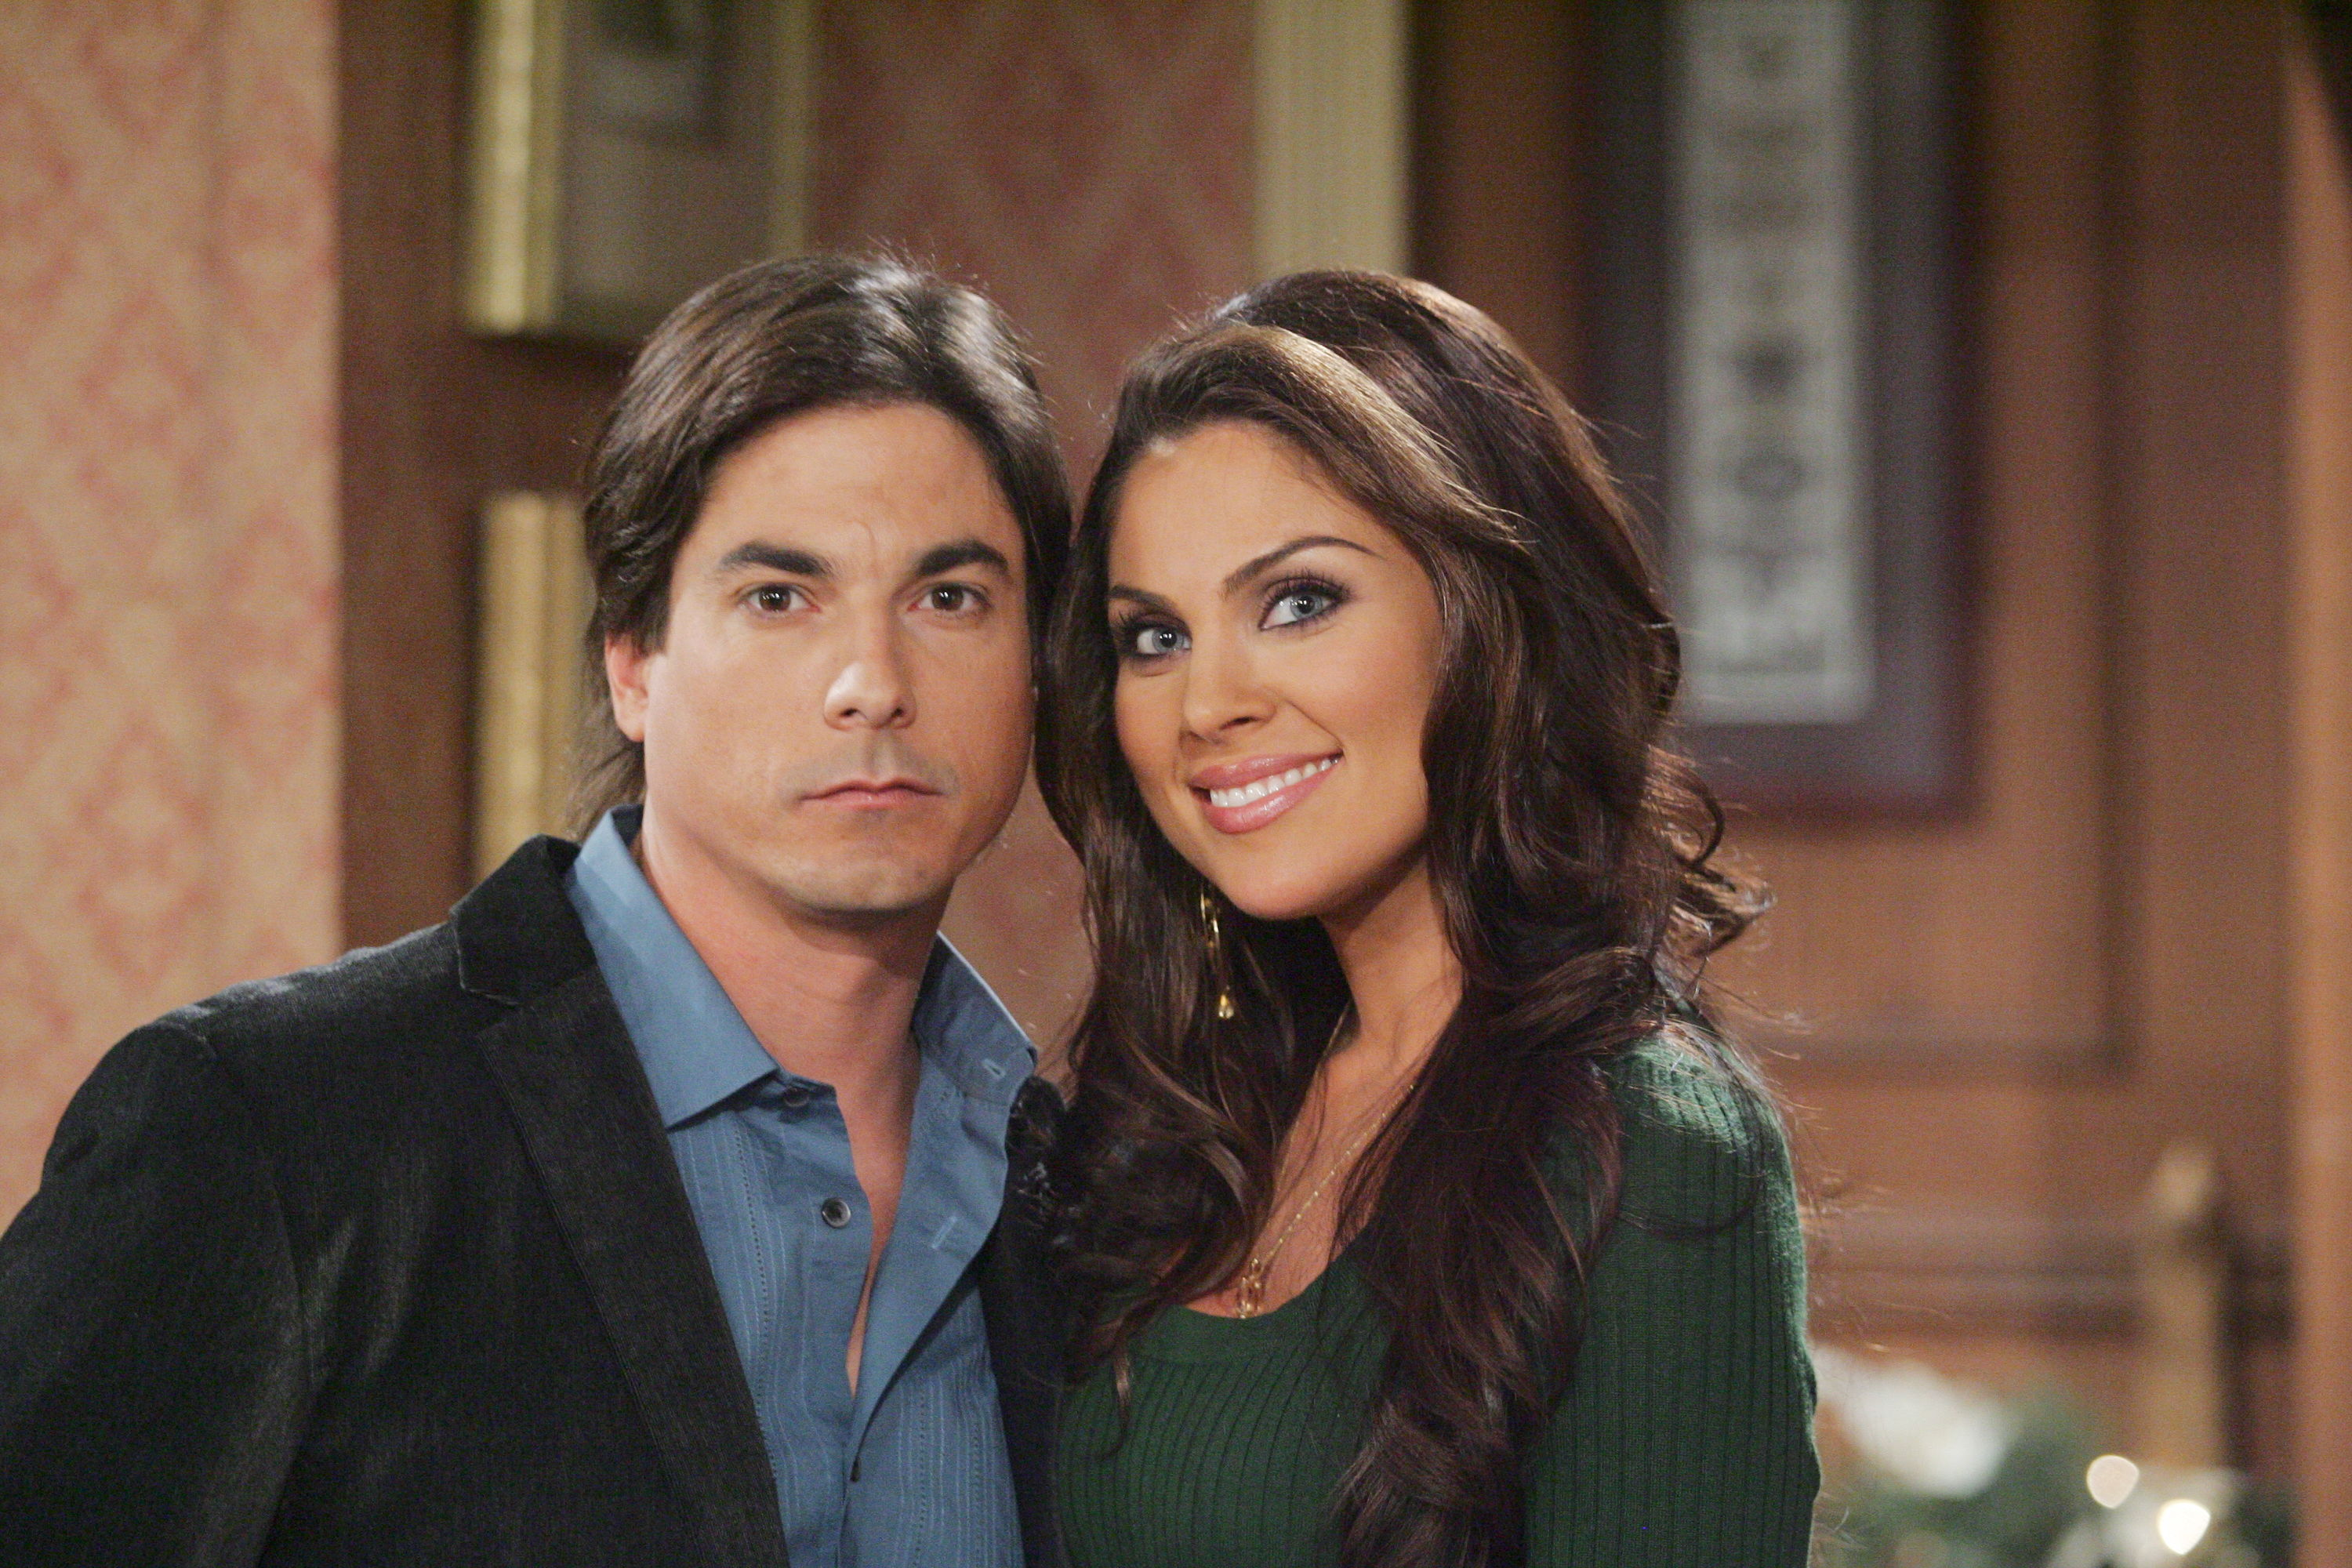 Days of Our Lives (DOOL) Comings and Goings: Will and